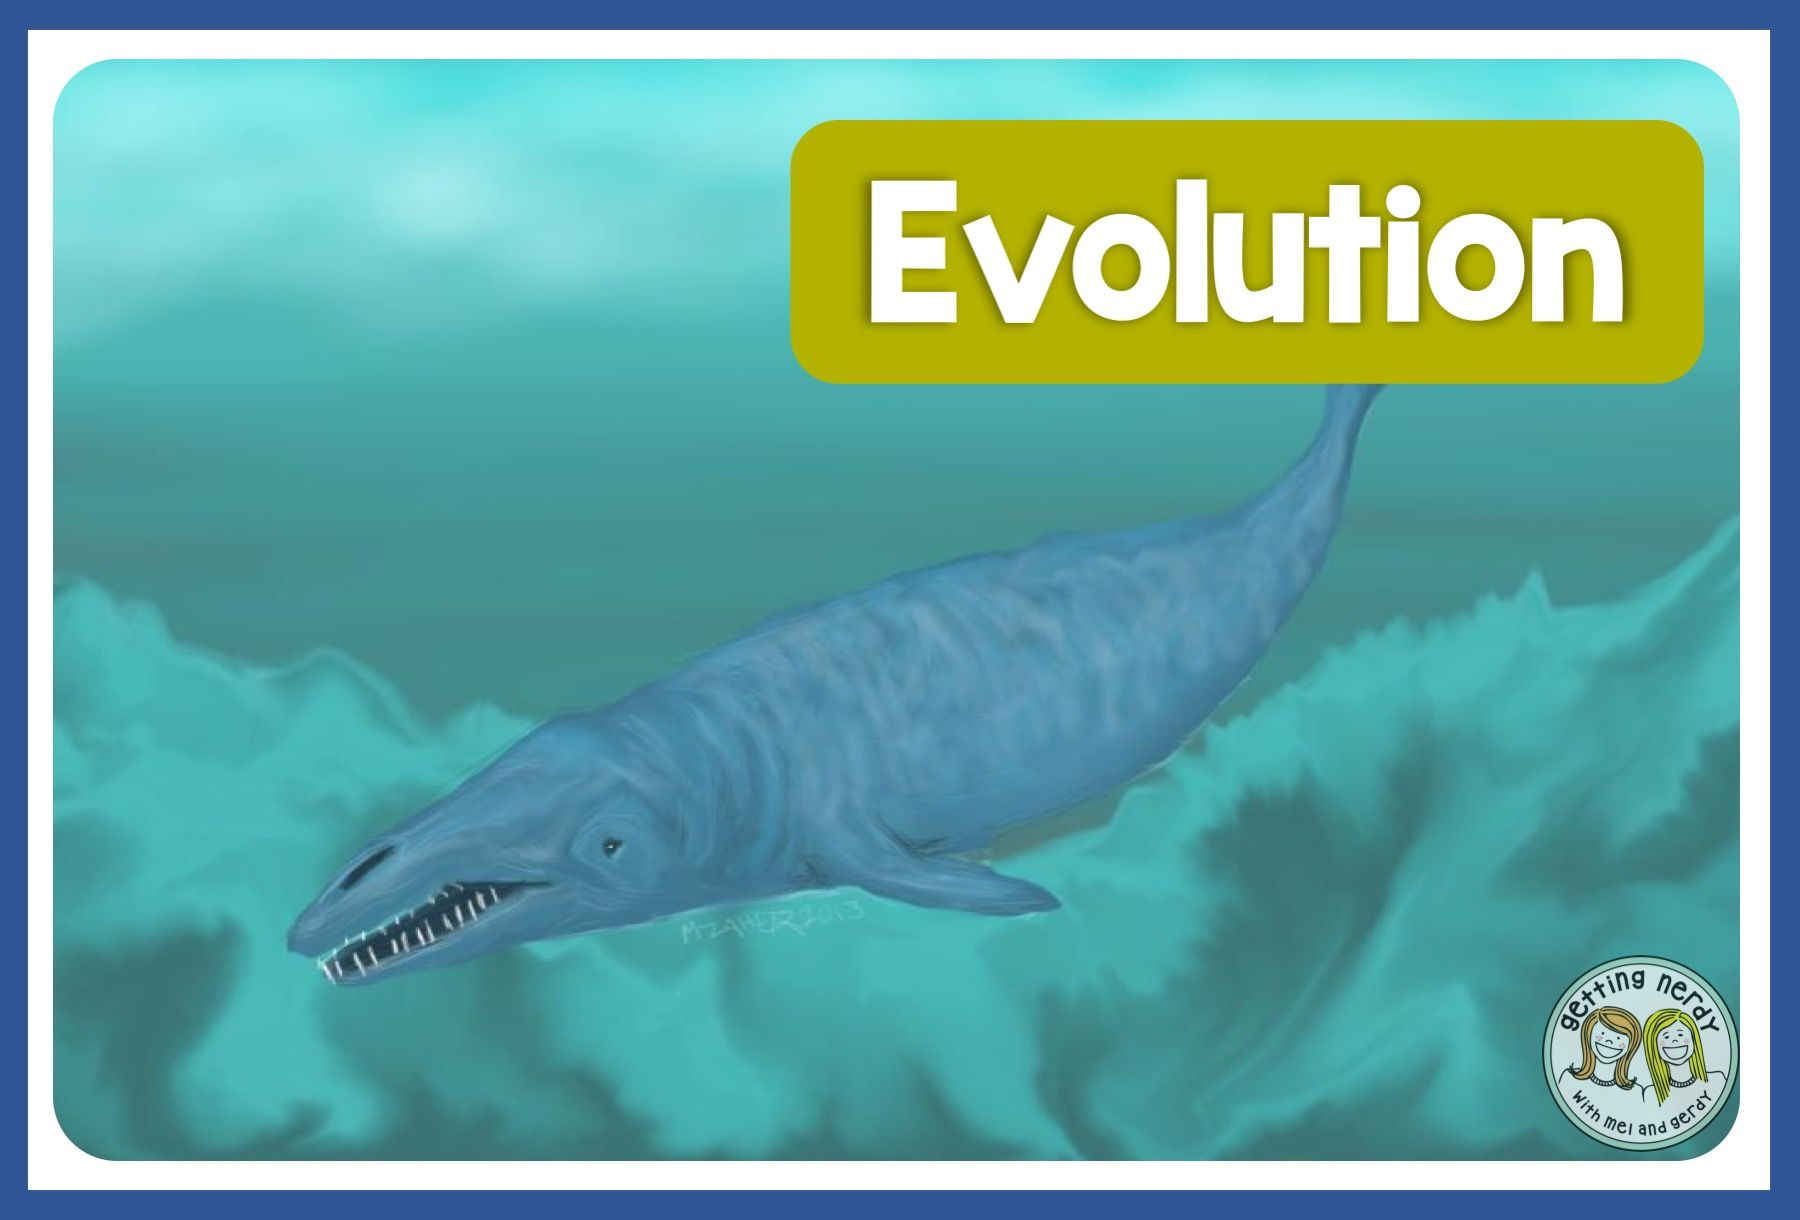 Lessons And Activities For Teaching Evolution In Science